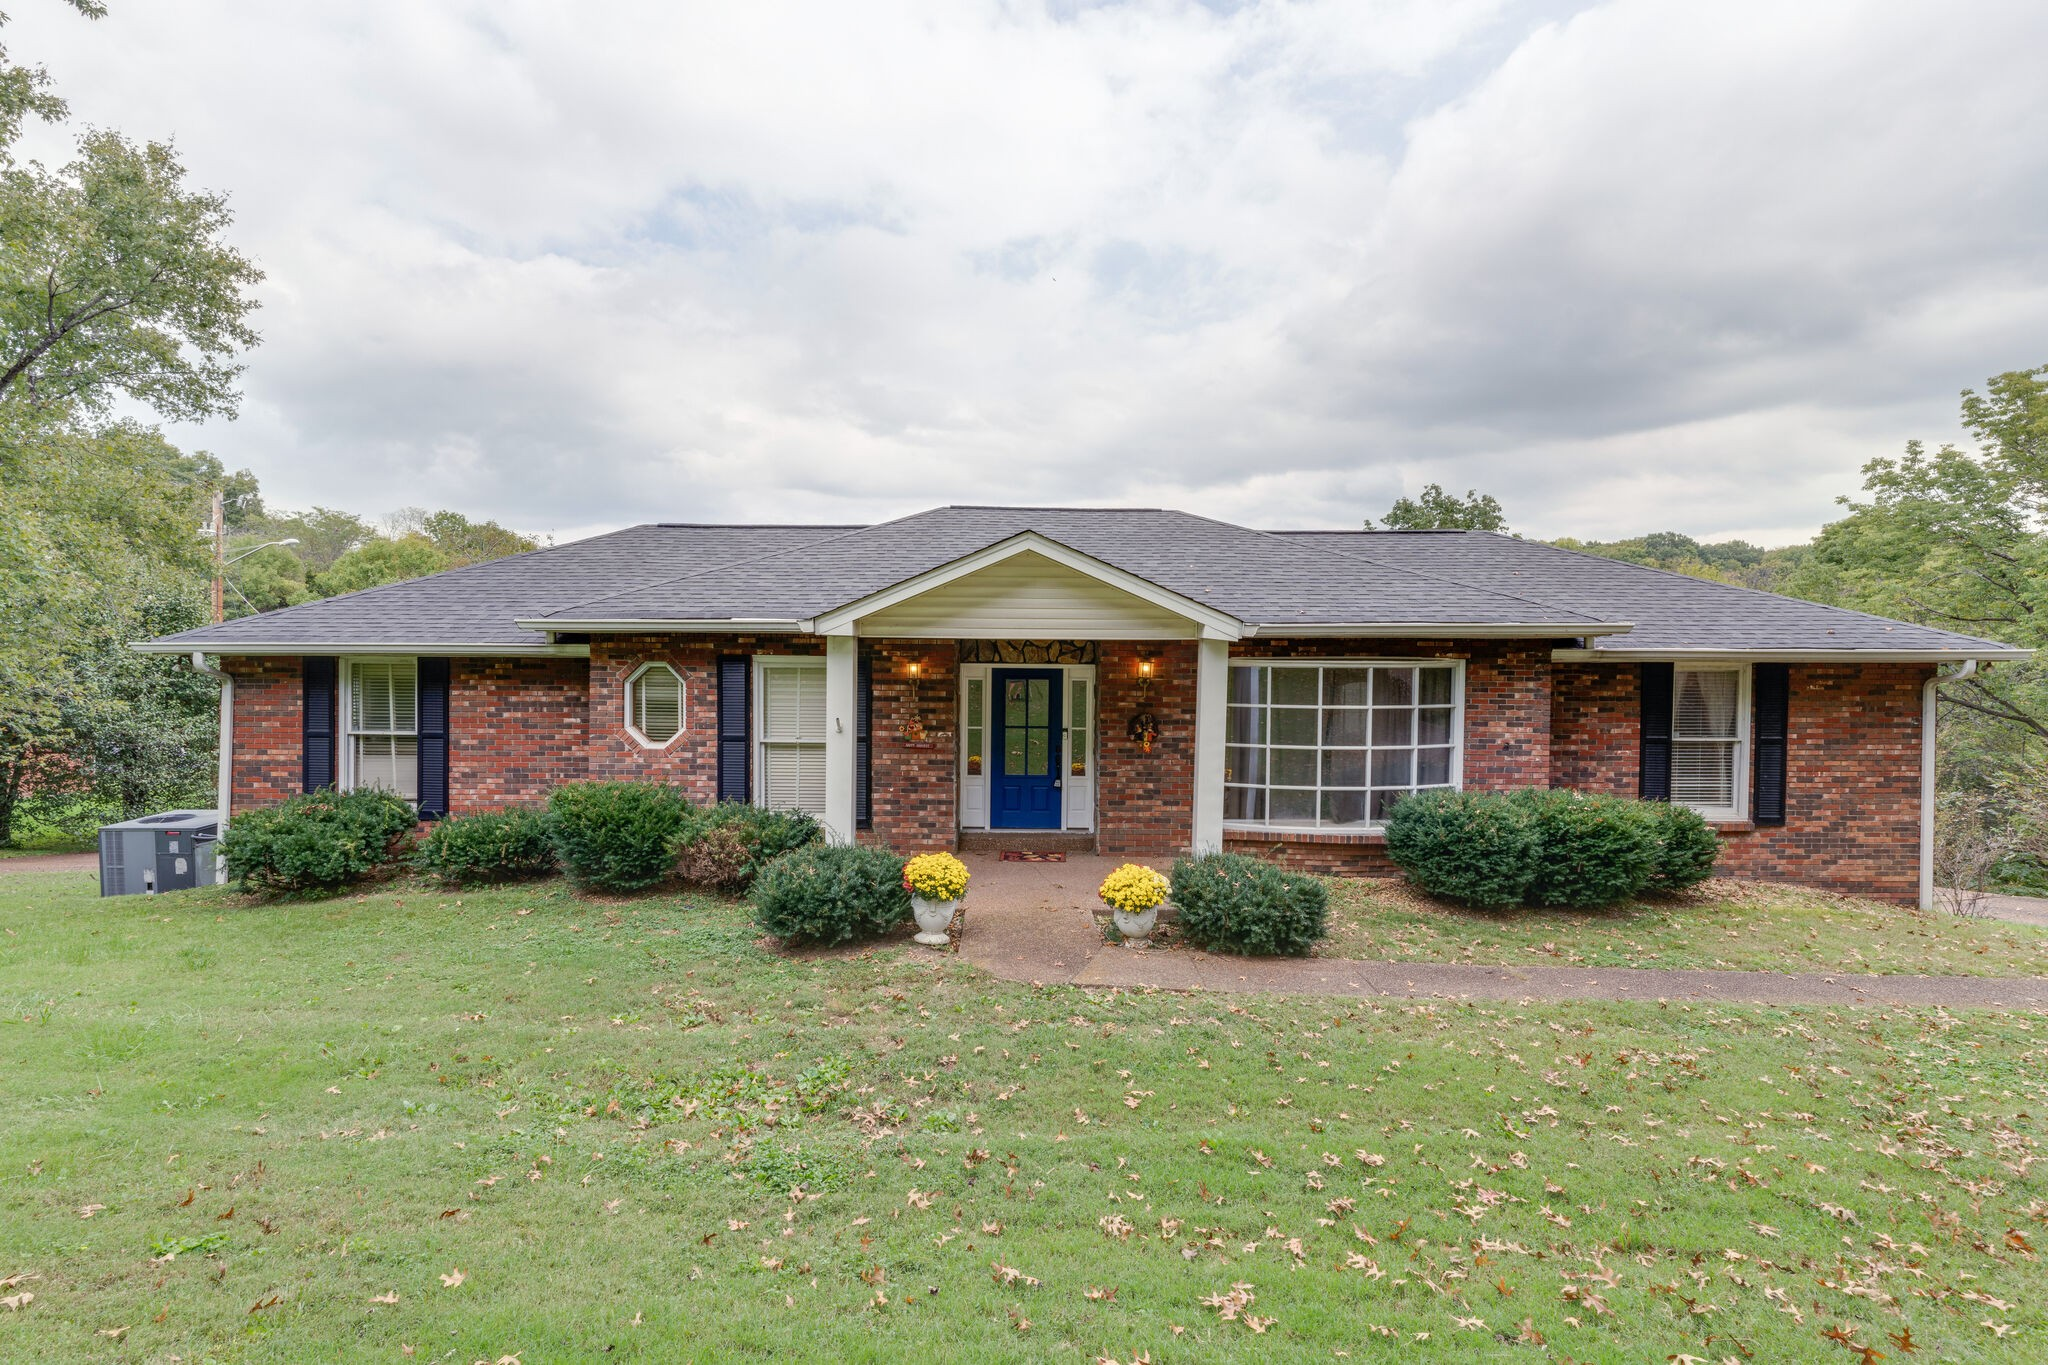 Just minutes from downtown Nashville, close to hospitals and interstate but nestled in a quiet and well established neighborhood. You'll love this HUGE yard with a private feel, open floor plan, all weather porch, 3 car garage and basement rec room!